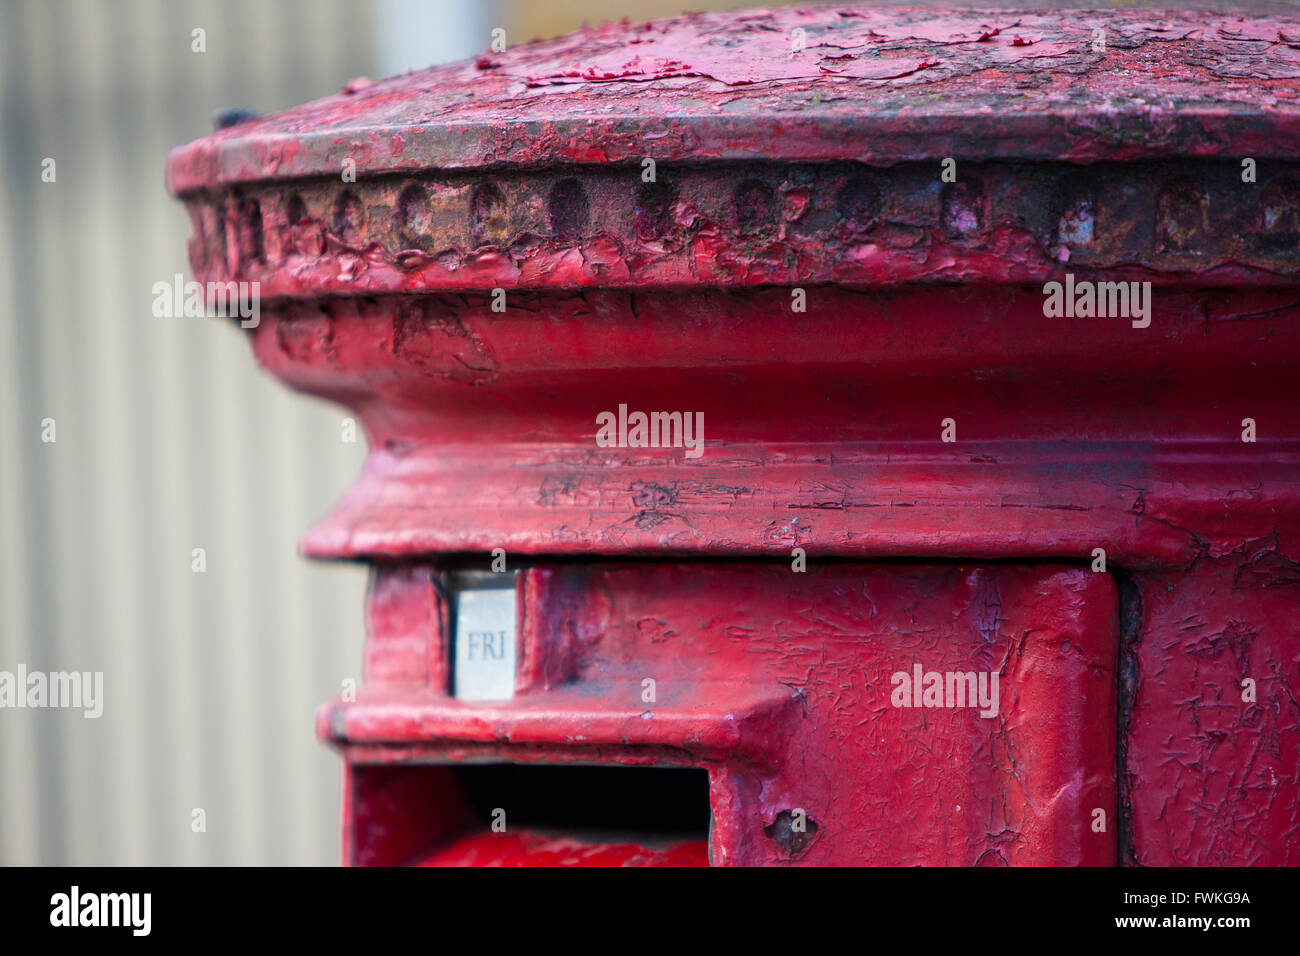 Iconic Red Pillar Post Box London England Decay Dilapidated Peeling Stock Photo